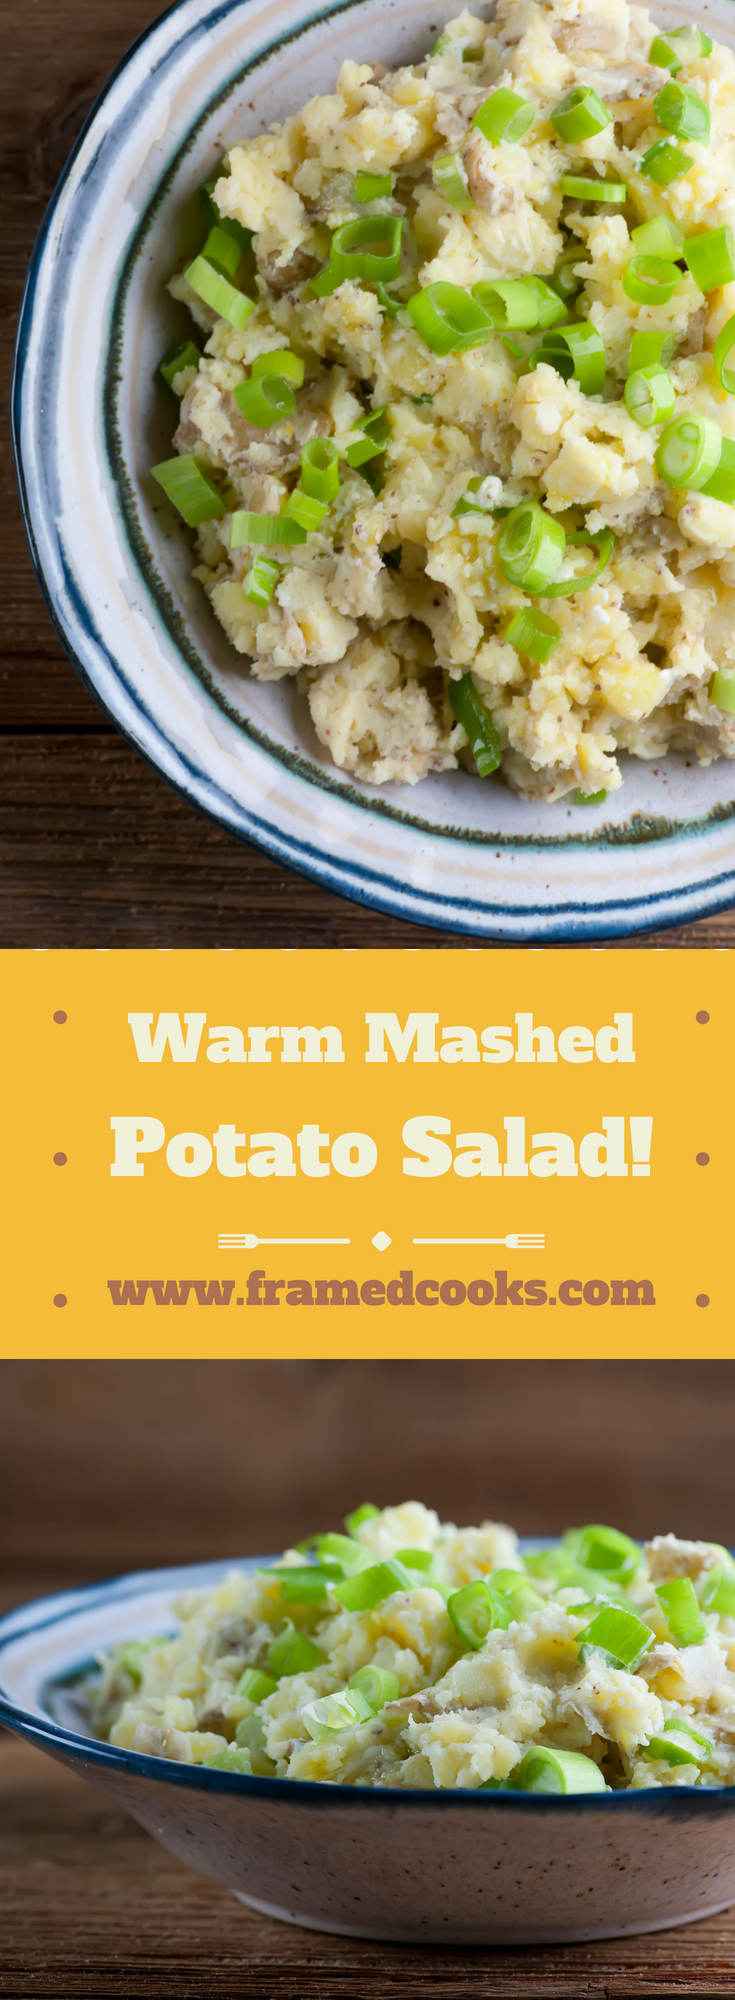 Warm mashed potato salad combines the tangy taste of classic potato salad with the comforting consistency of warm mashed potatoes.  Meet your new favorite summer side dish!